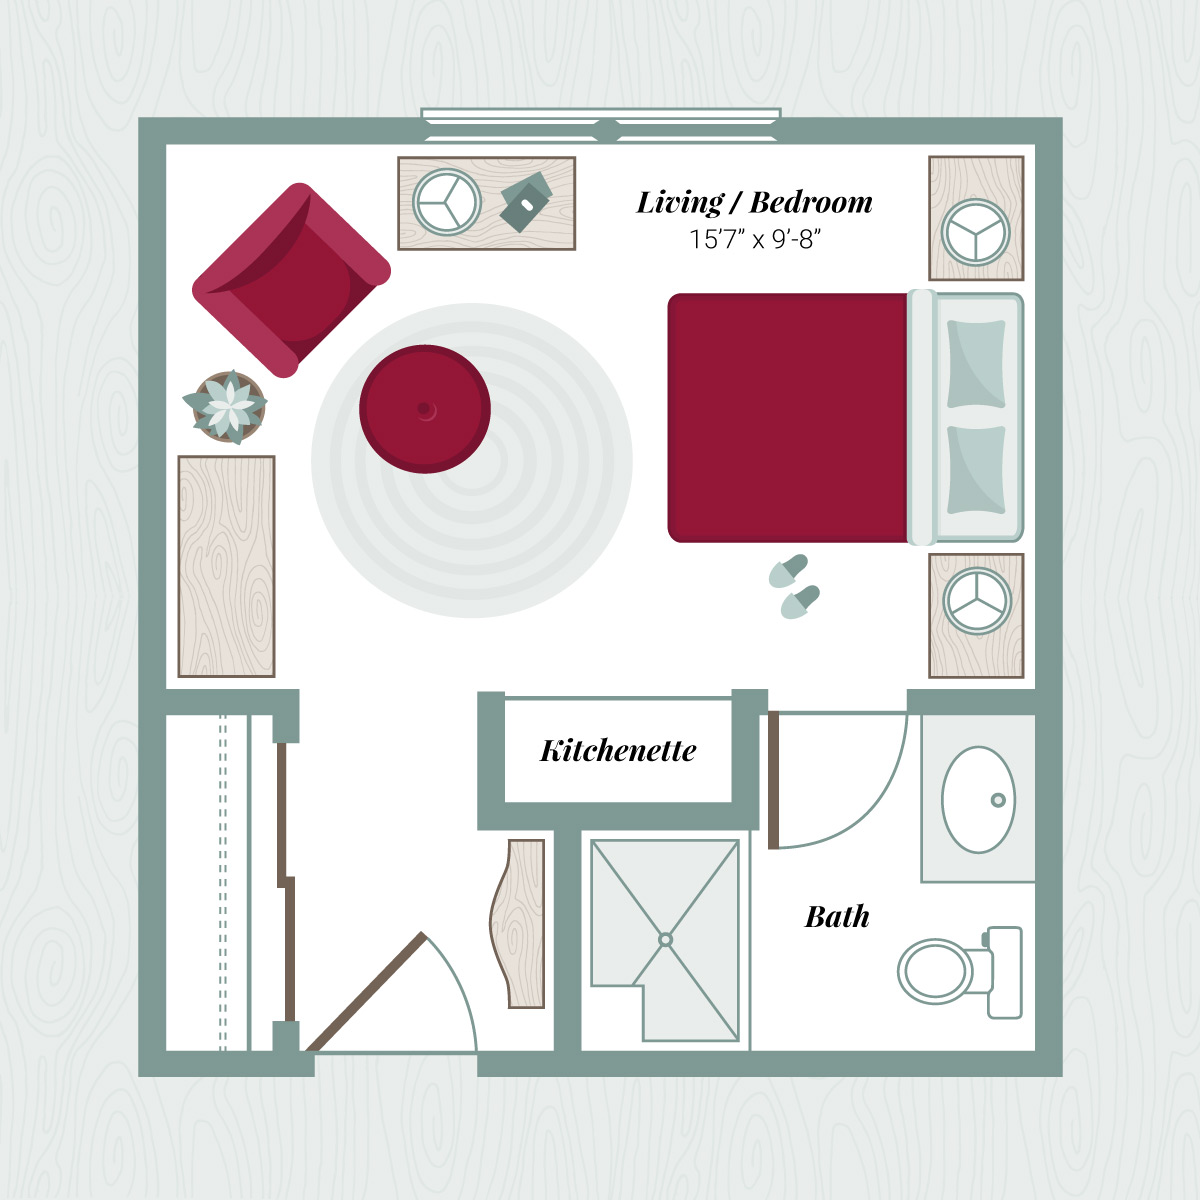 Floor Plan A - Studio Apartment